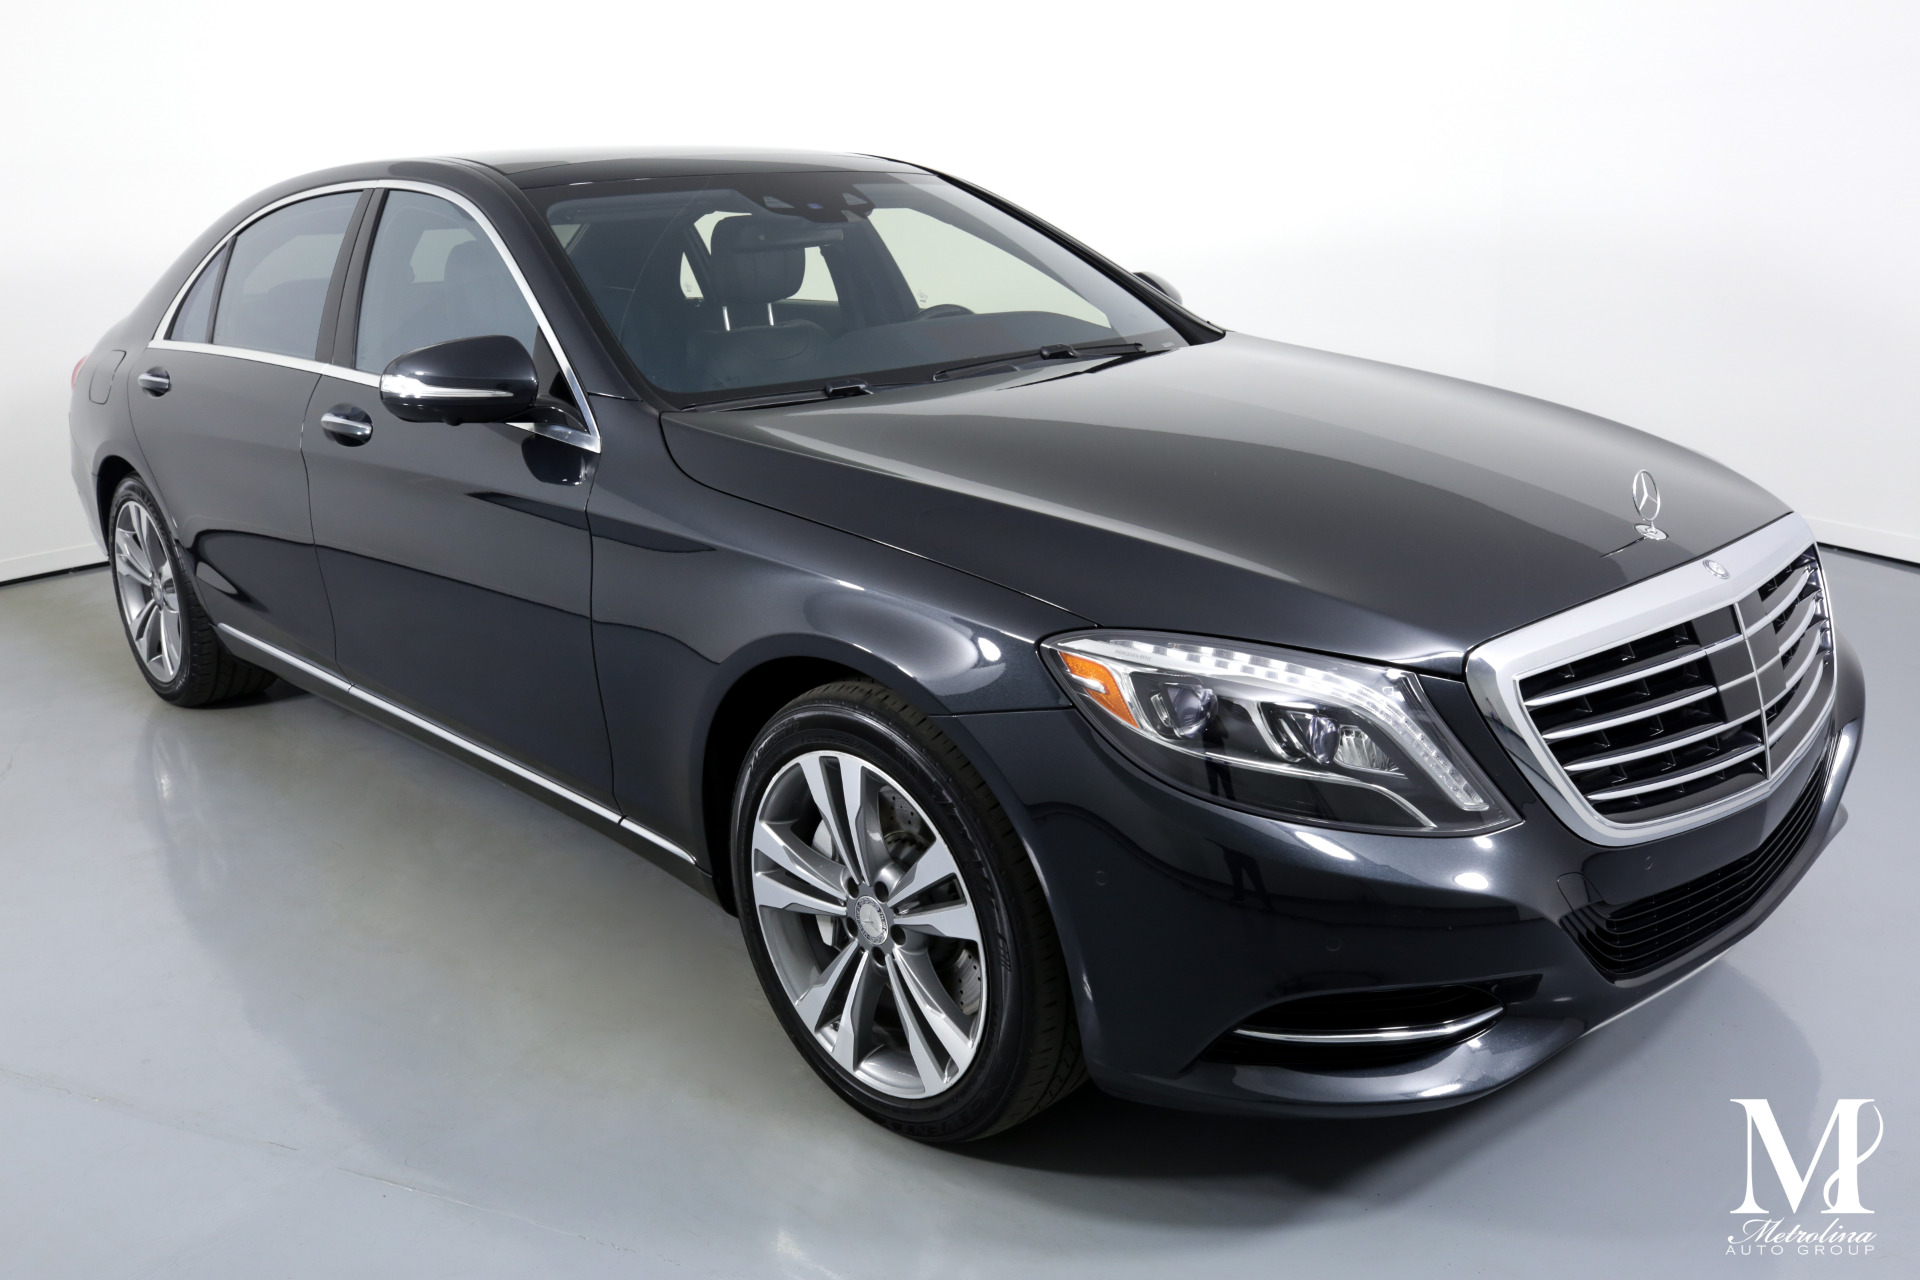 Used 2016 Mercedes-Benz S-Class S 550 4dr Sedan for sale $43,996 at Metrolina Auto Group in Charlotte NC 28217 - 2